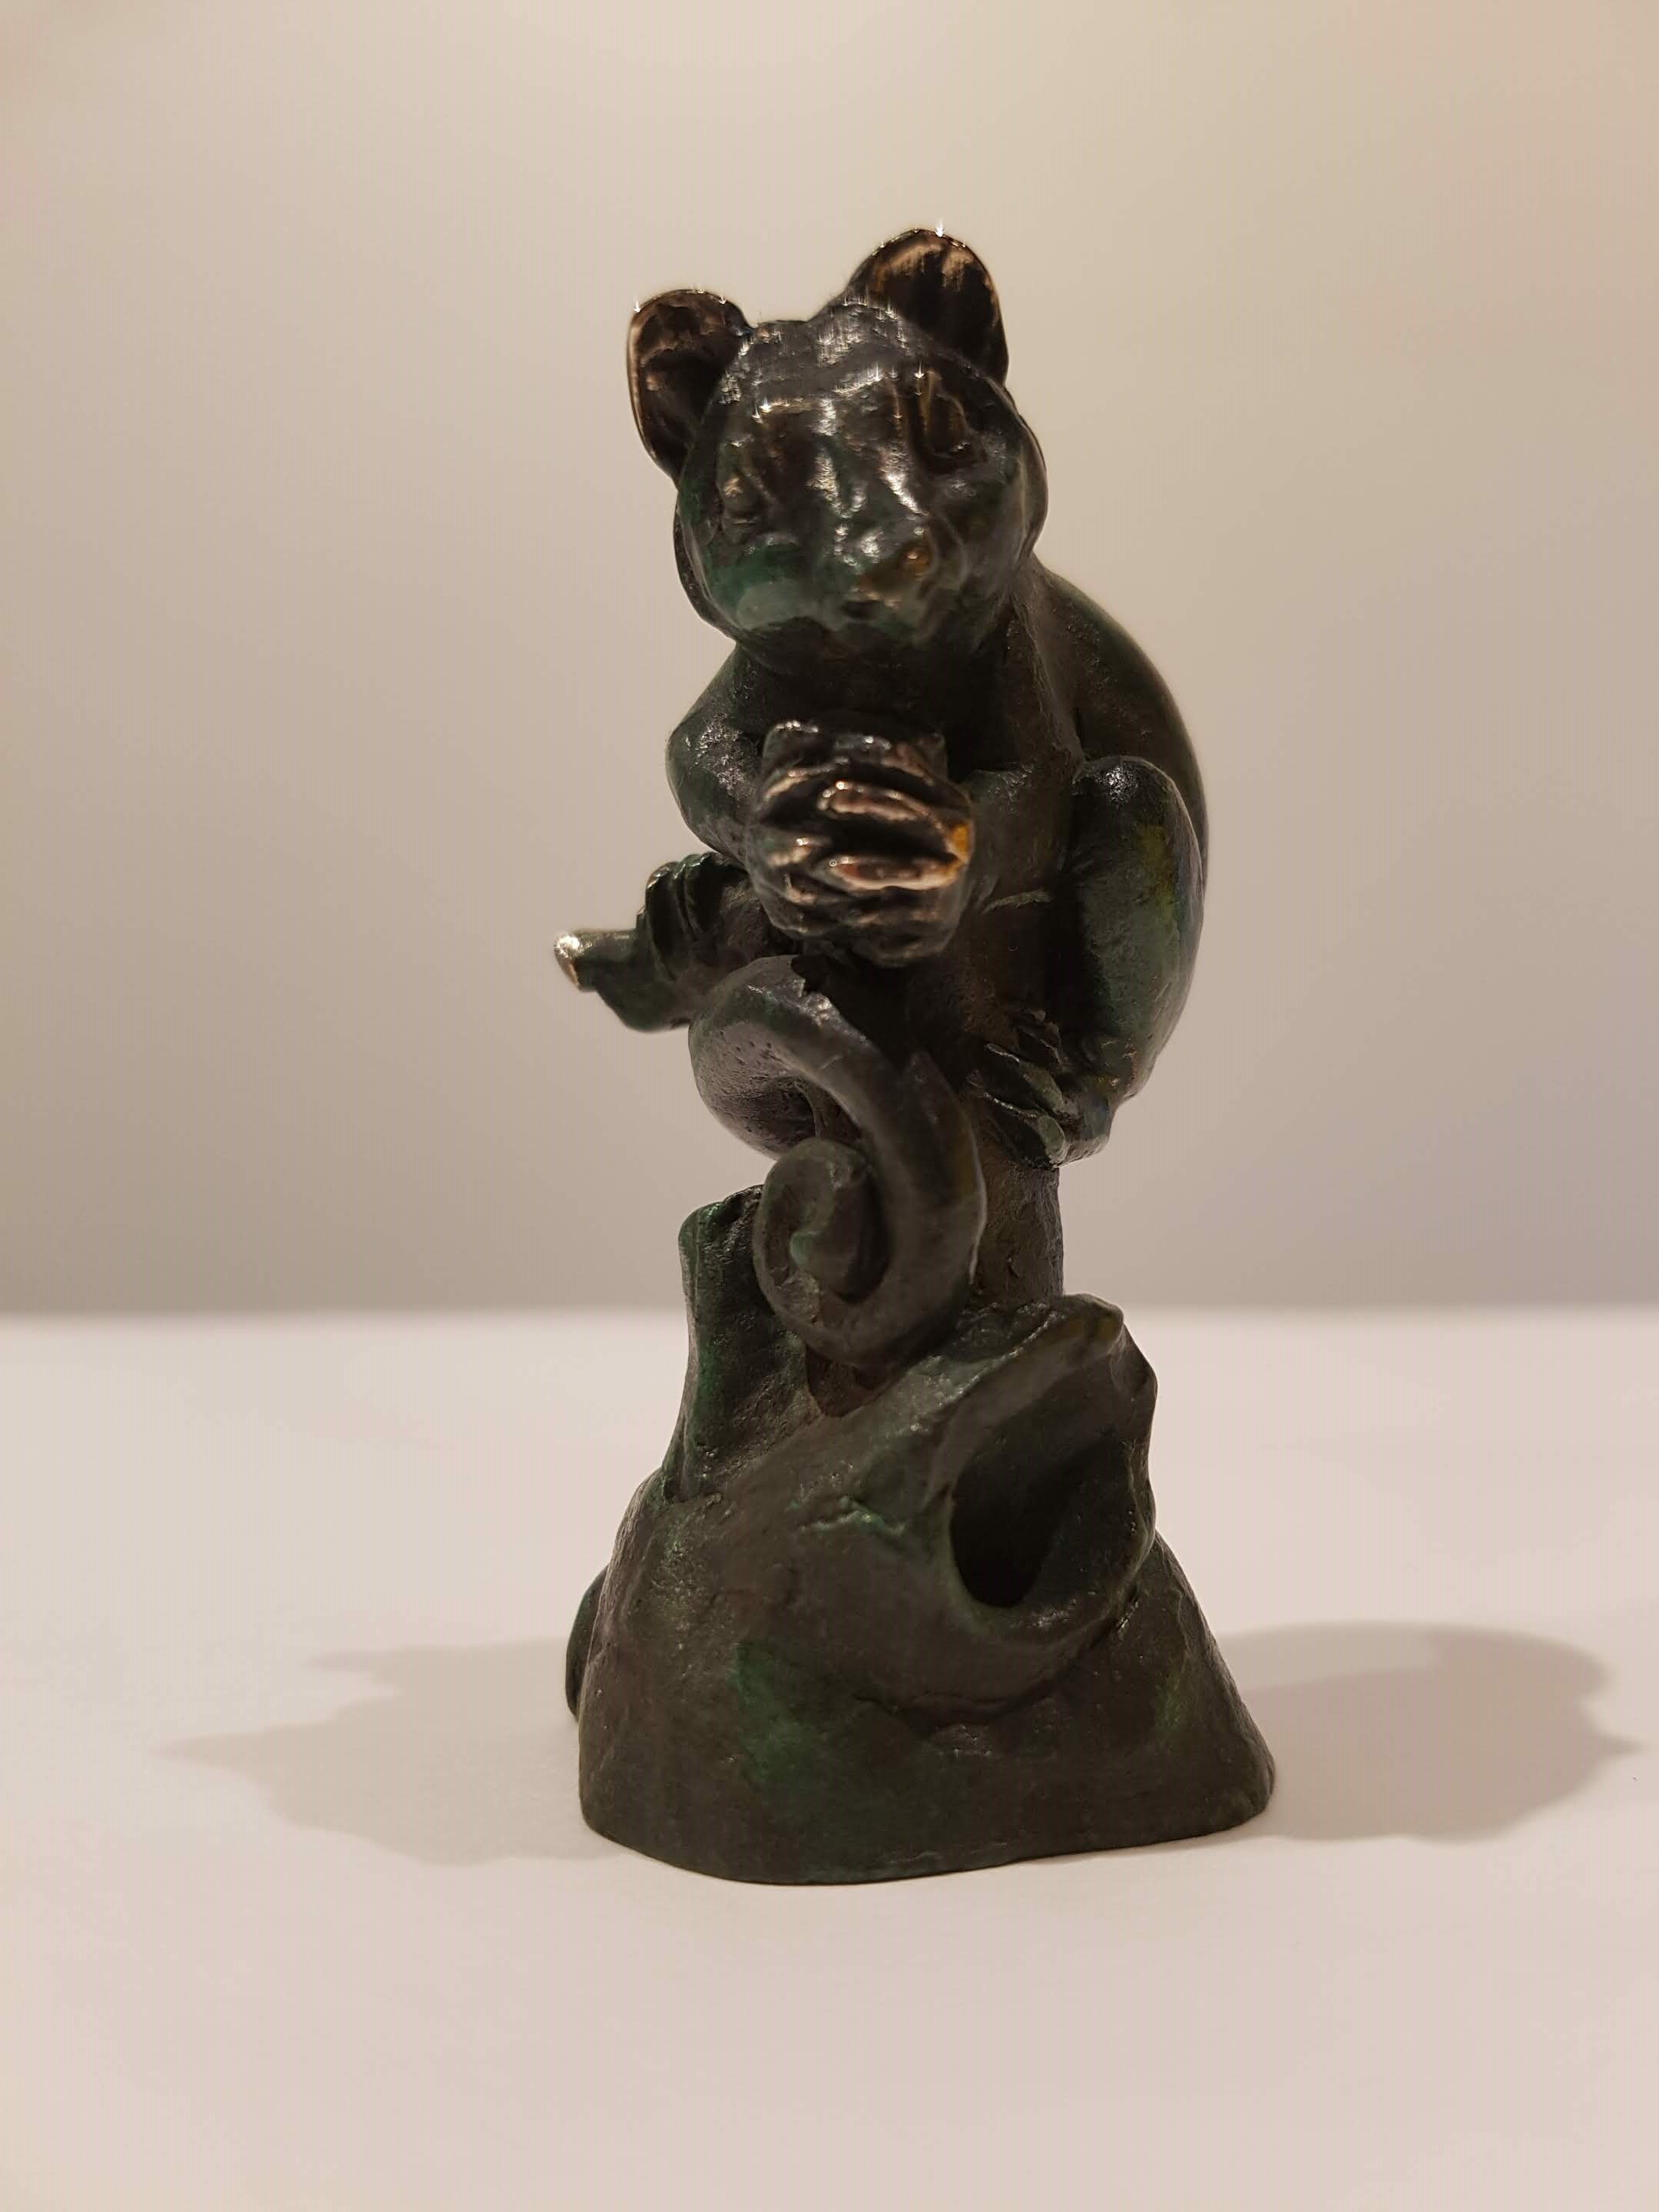 Bronze Miniature Sculpture - Possum on a Stump 5/50 - Silvio Apponyi